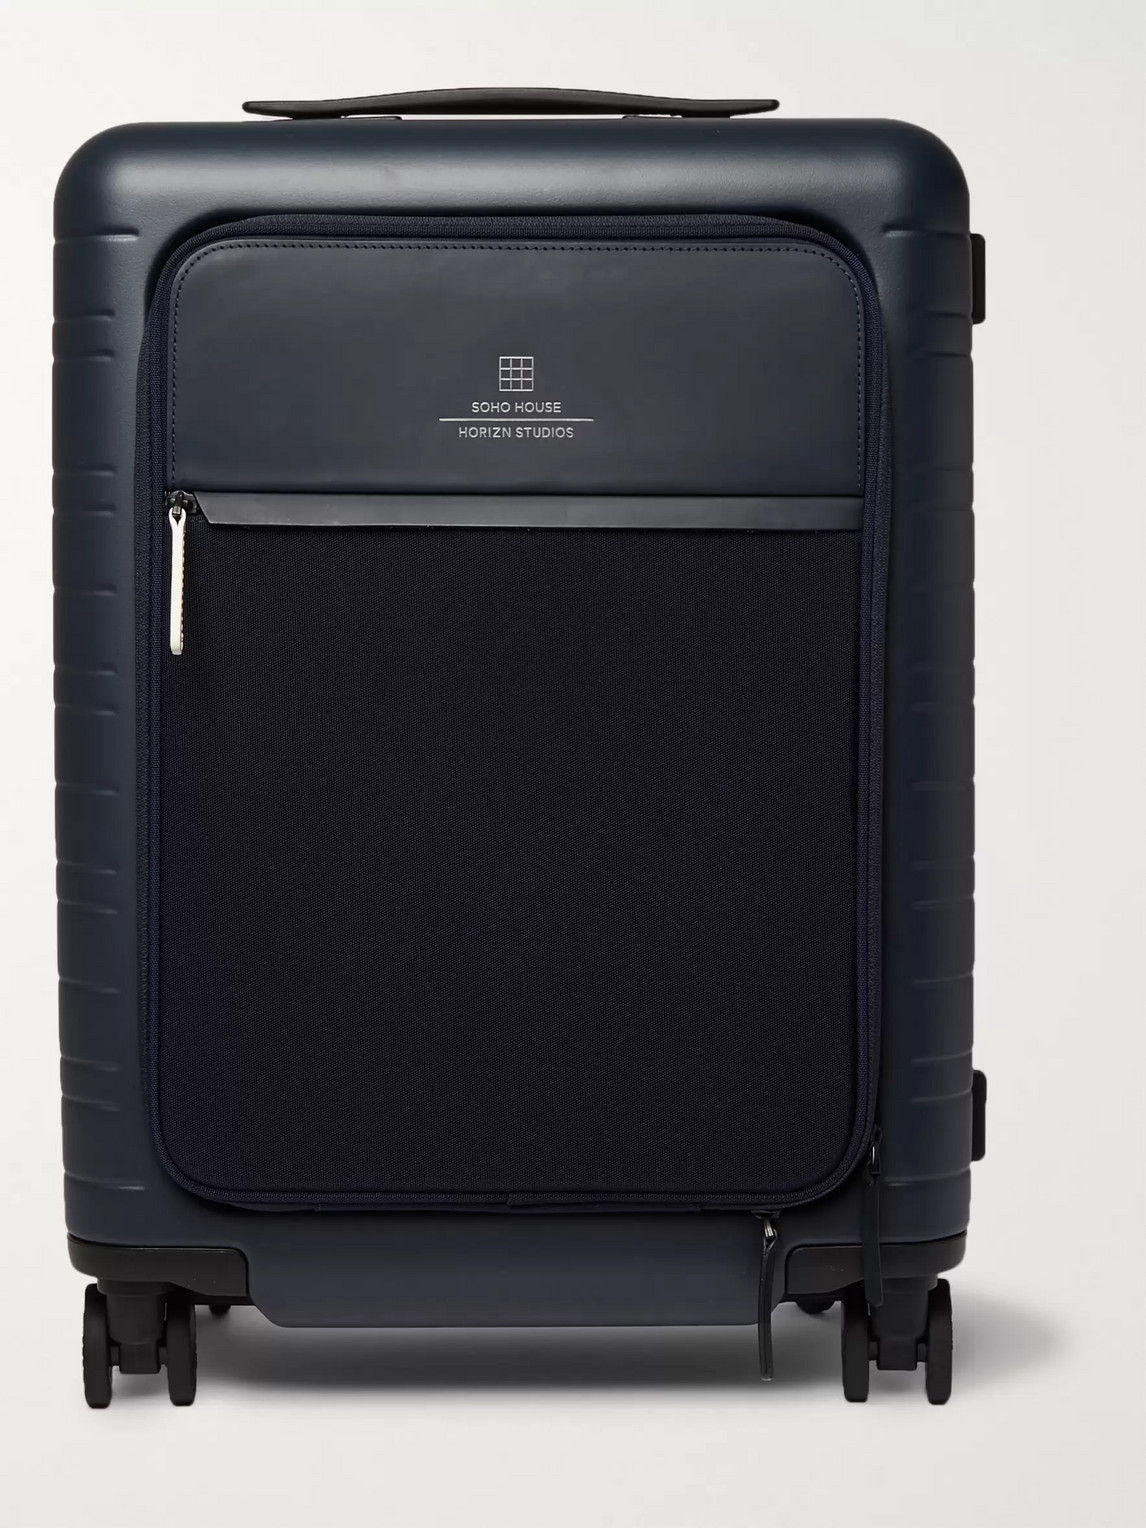 Horizn Studios Soho House M5 Leather-trimmed Polycarbonate And Nylon Suitcase In Blue